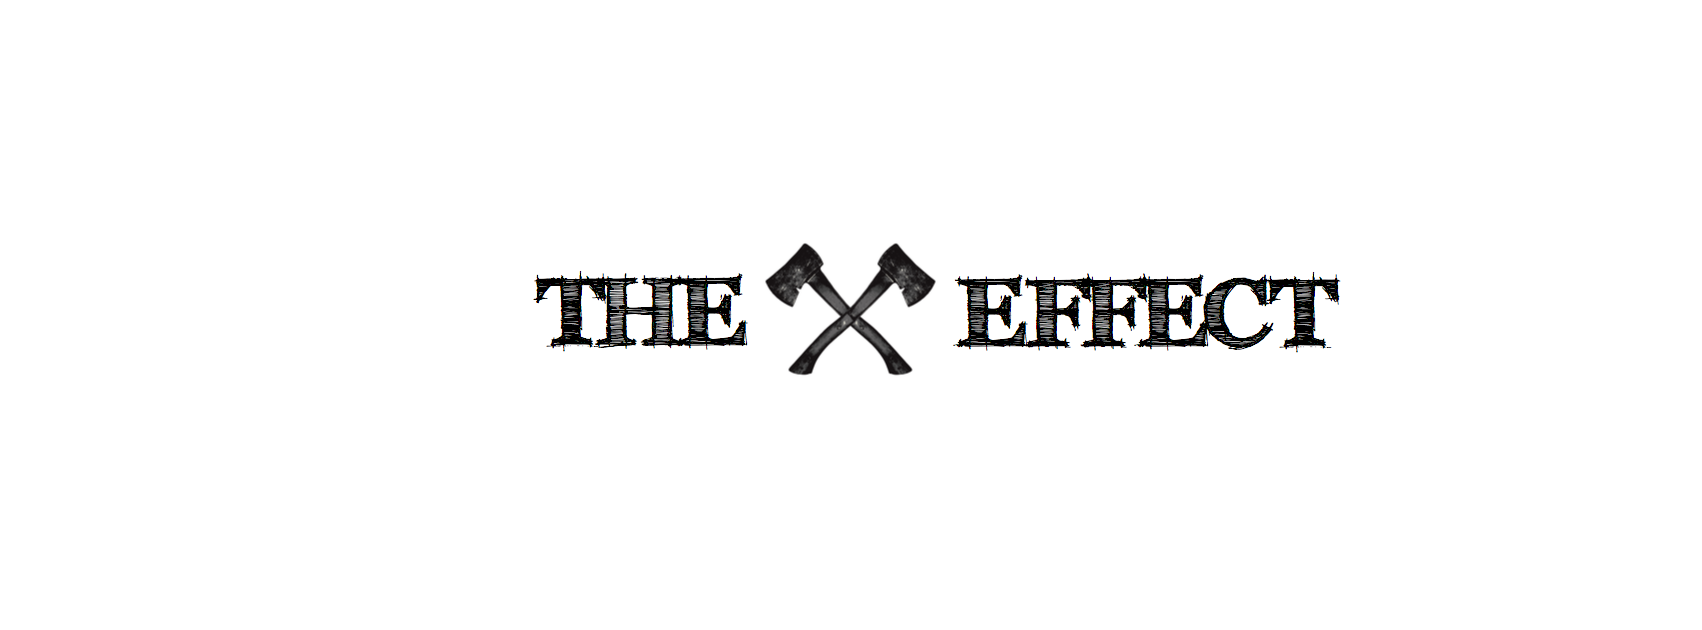 The Axe Effect logo